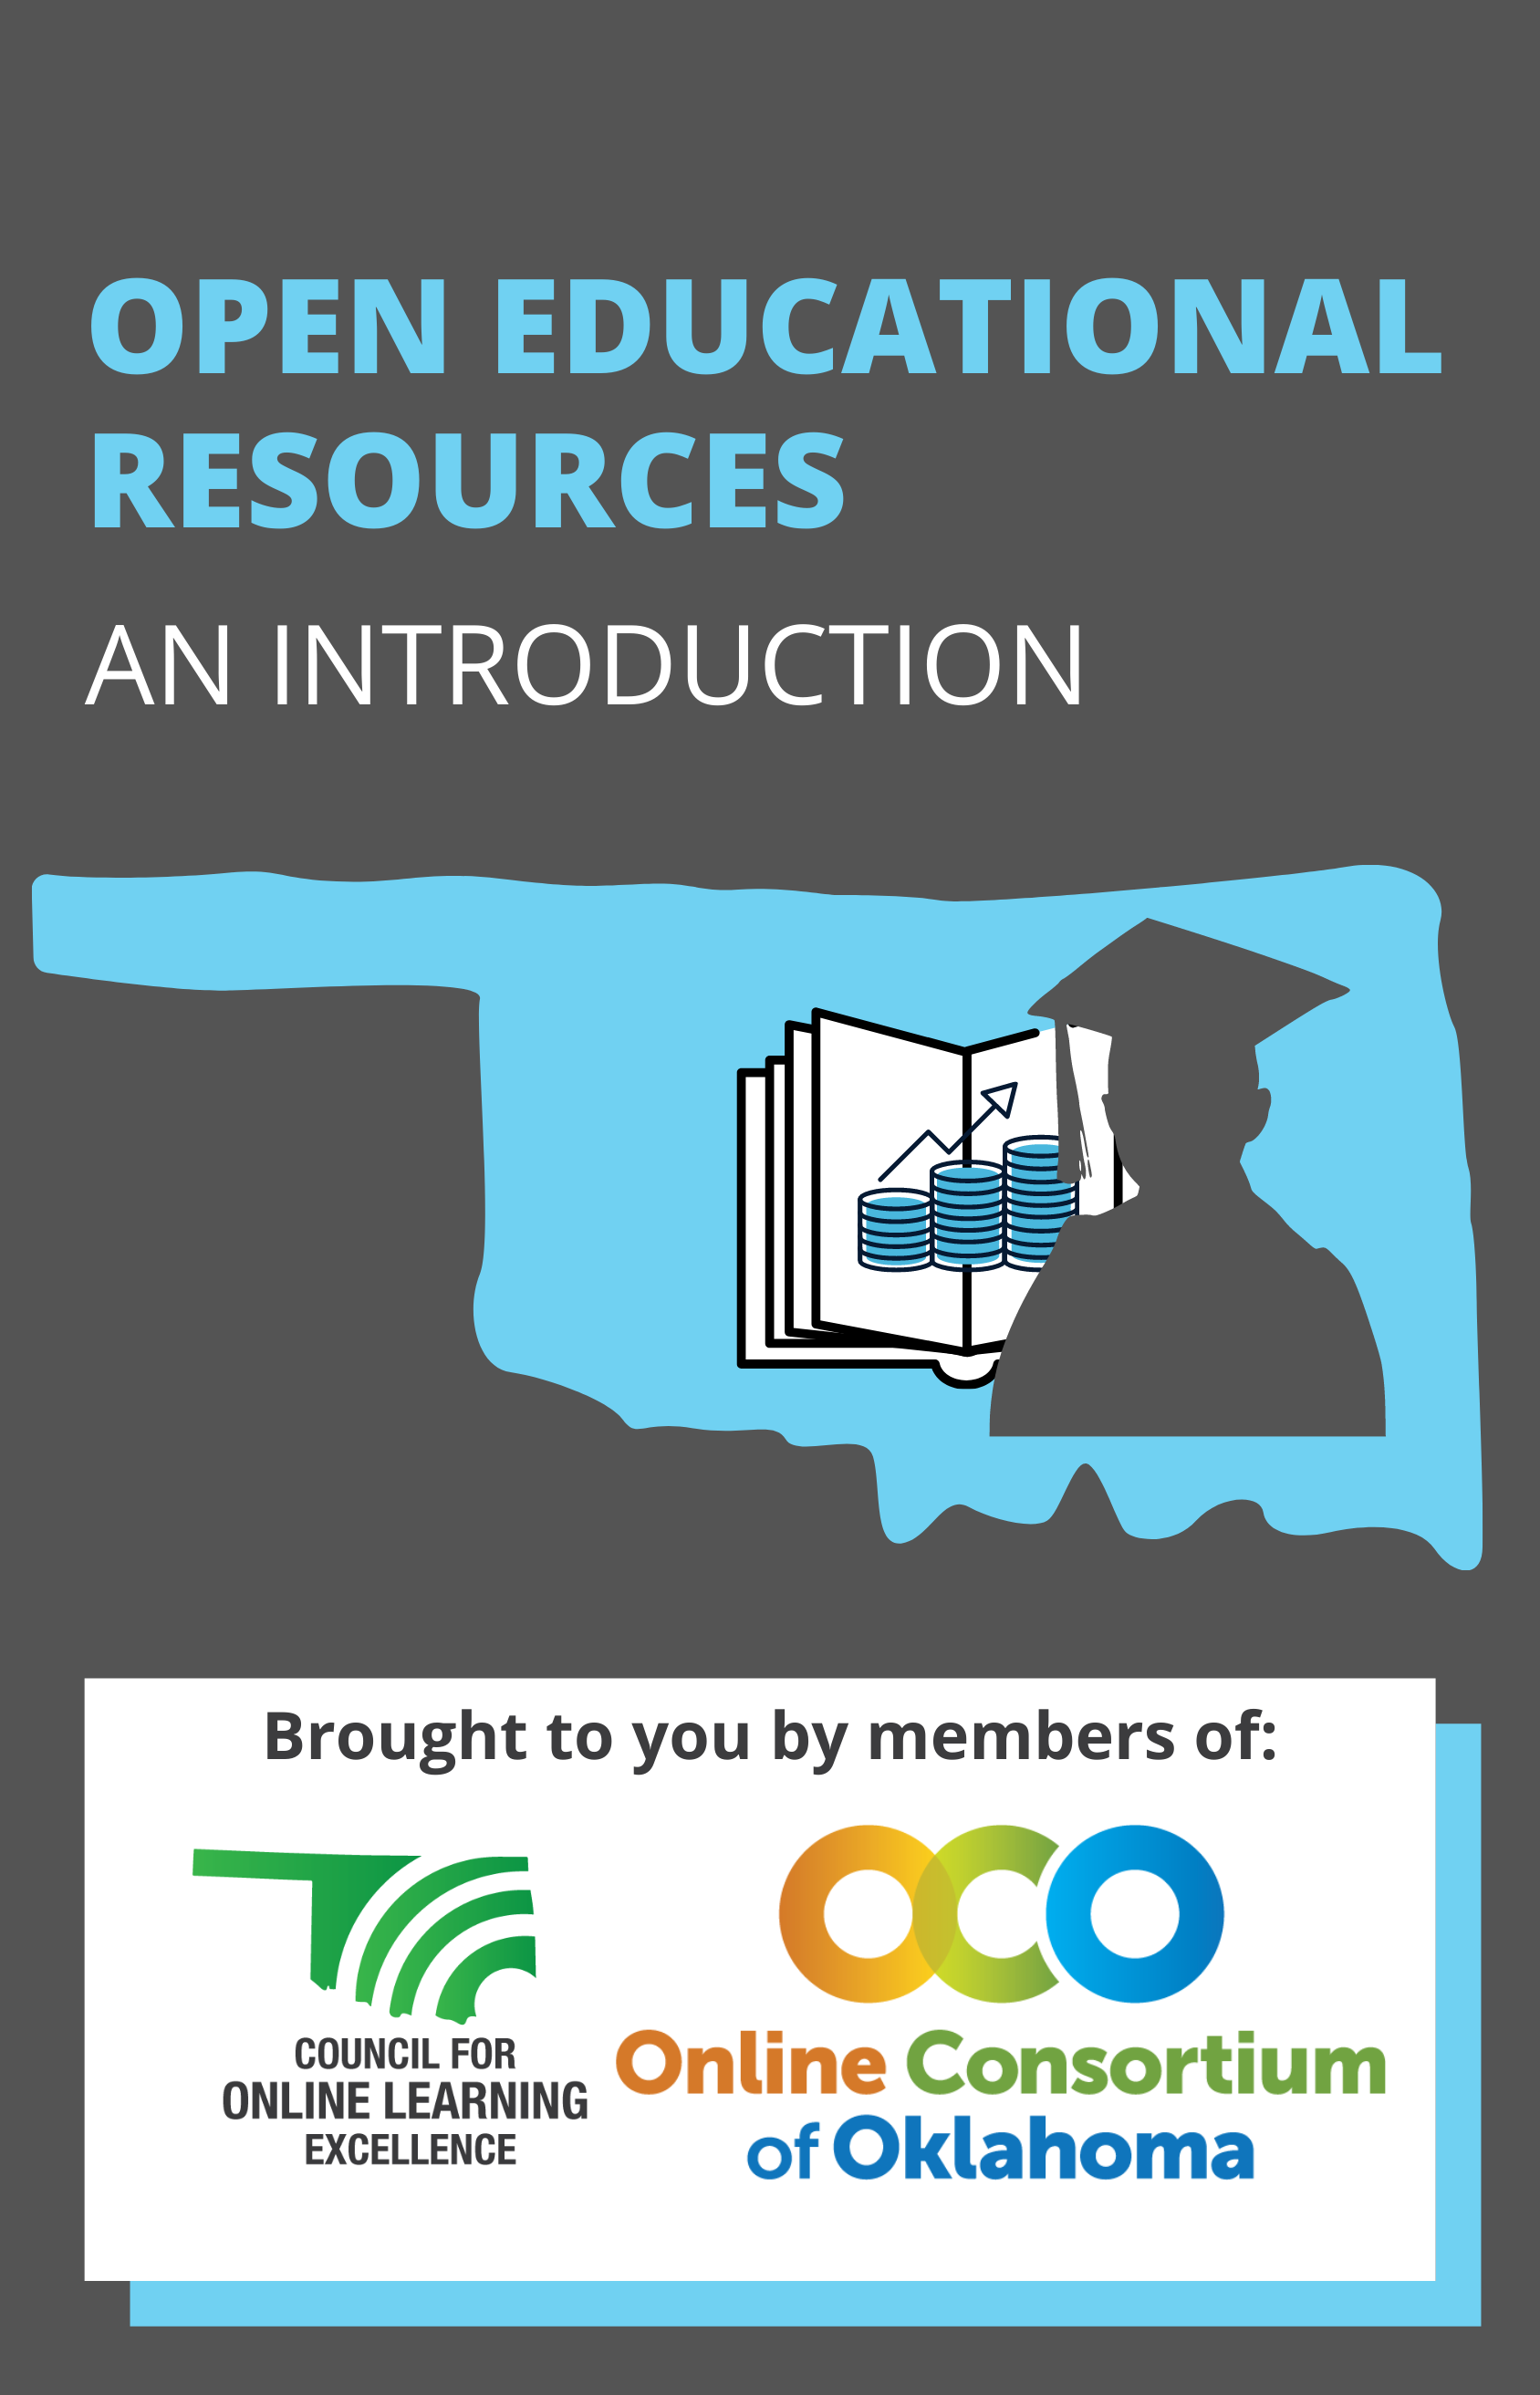 Go to Open Educational Resources Basics & Beyond on OPEN OCO Pressbooks (opens in new window)